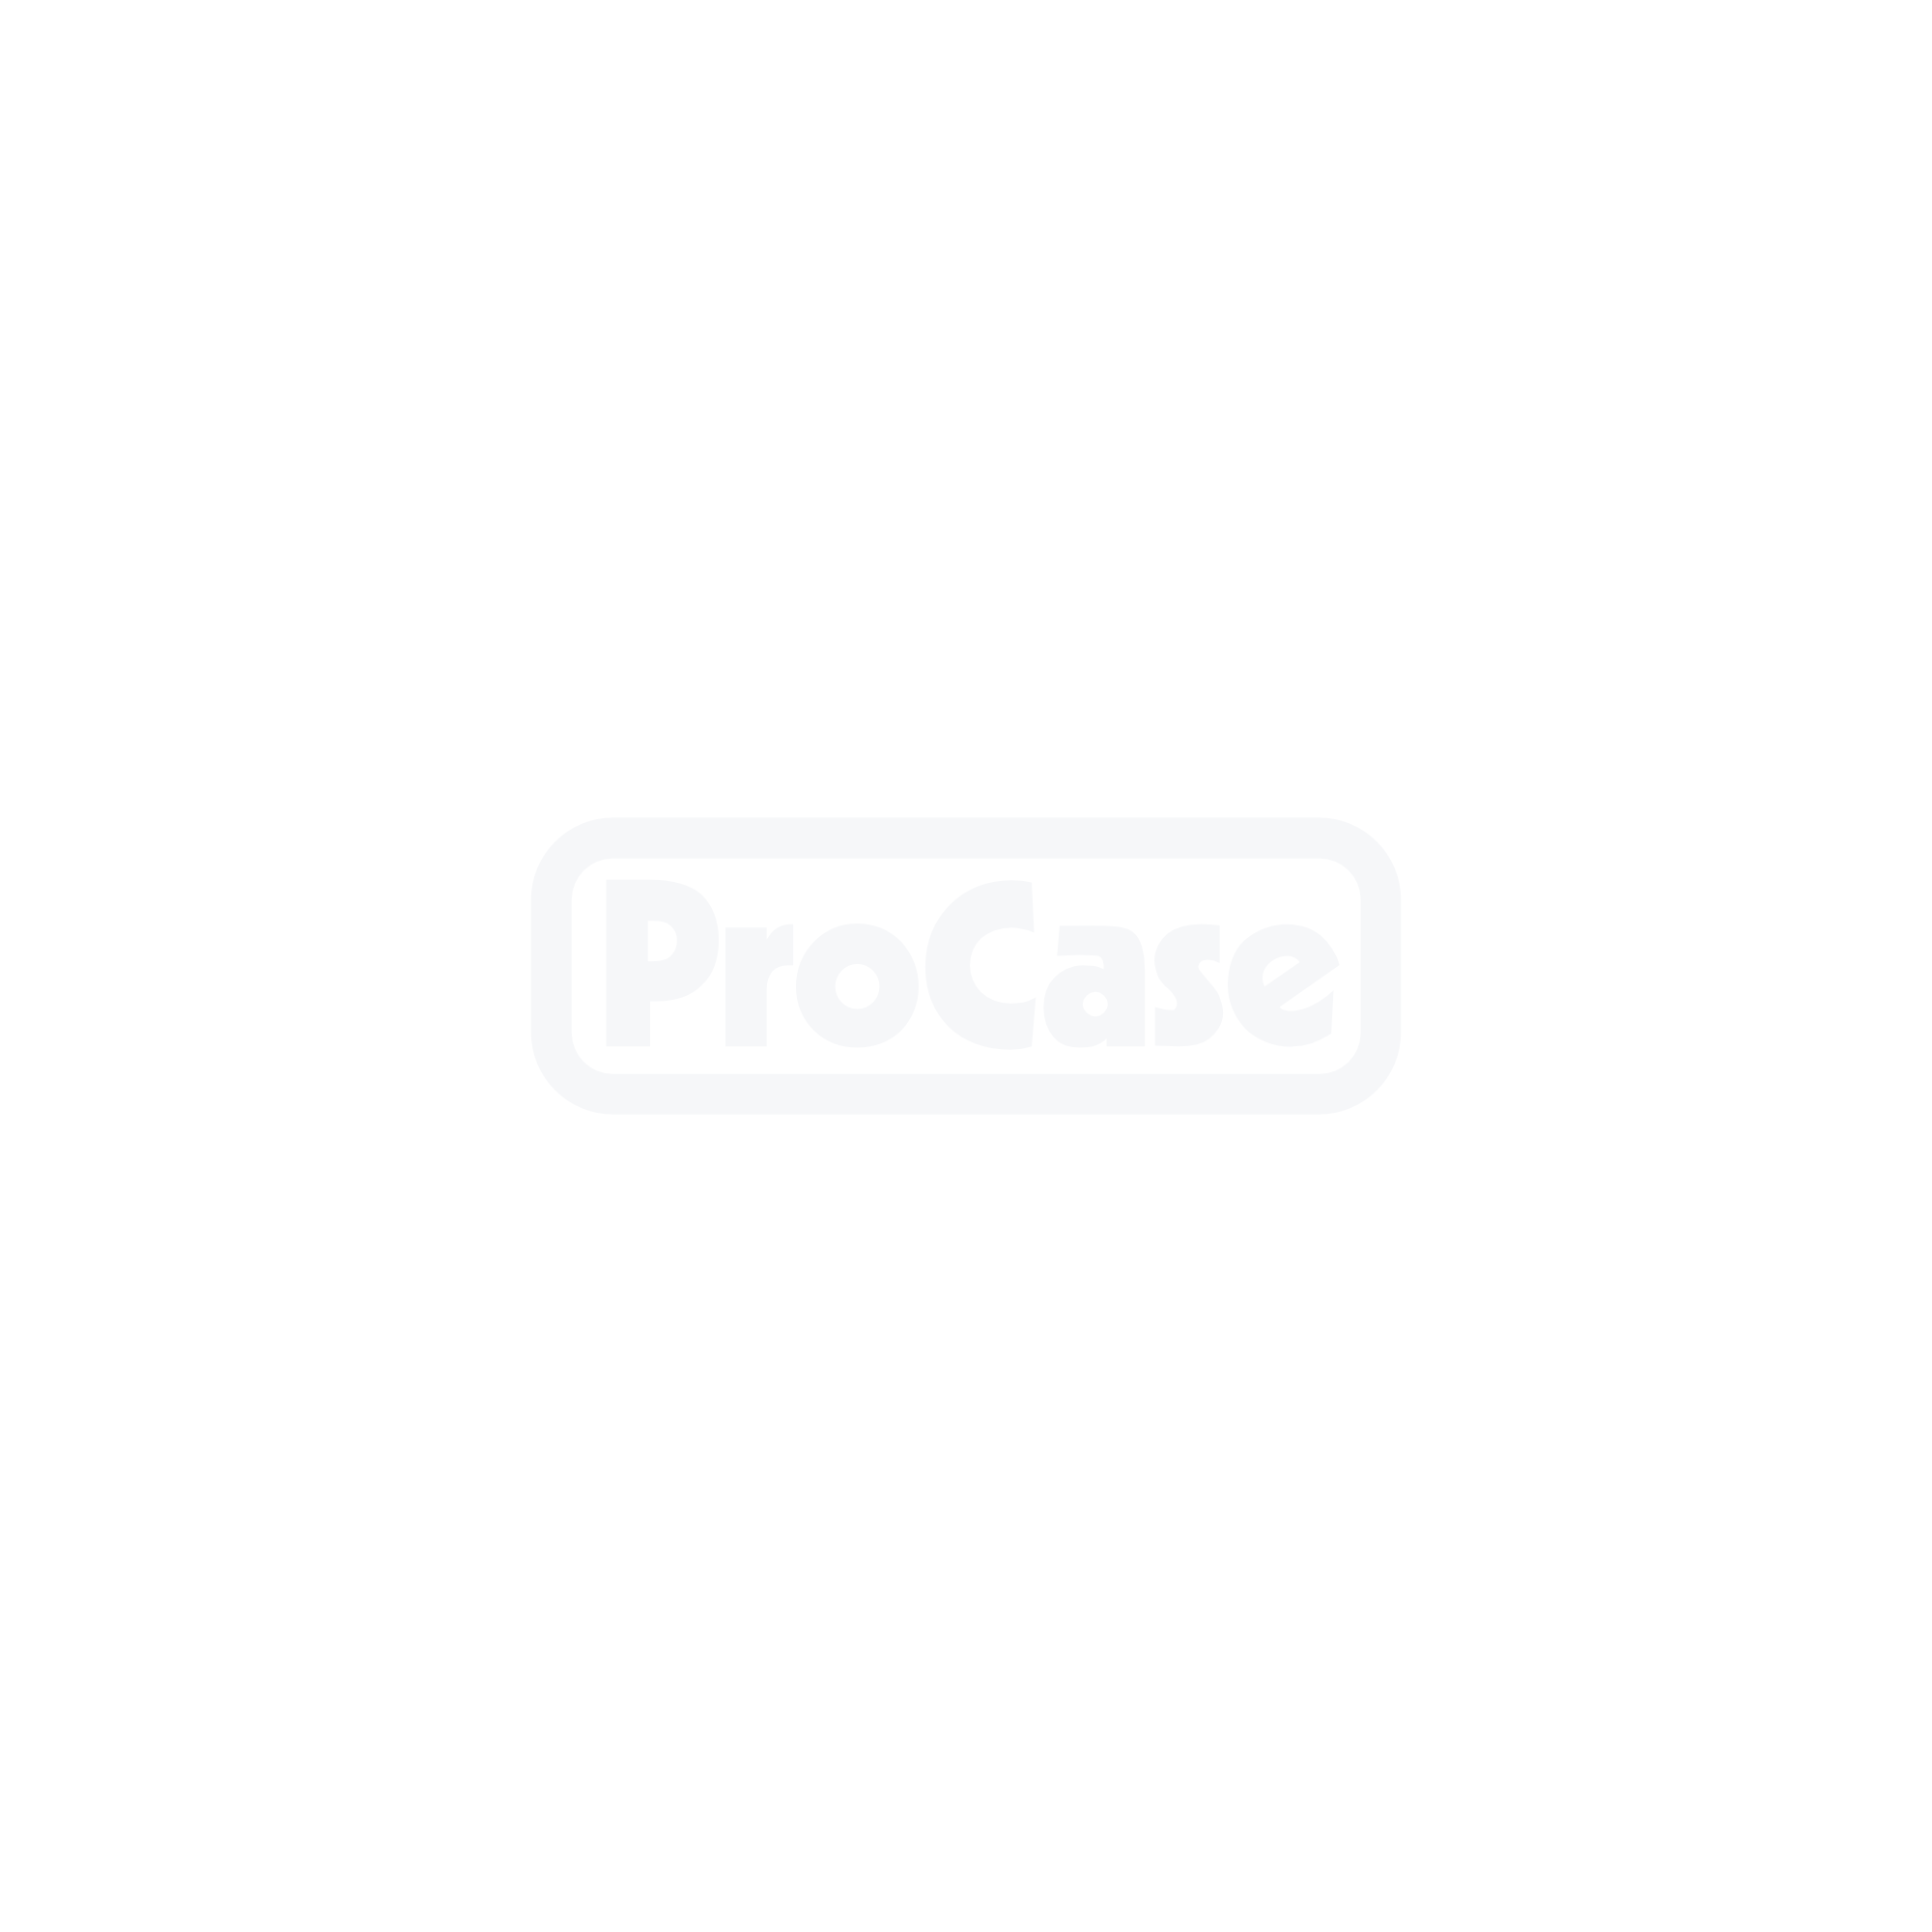 Flightcase für JB Lighting Varyscan P3 Spot & Wash 2